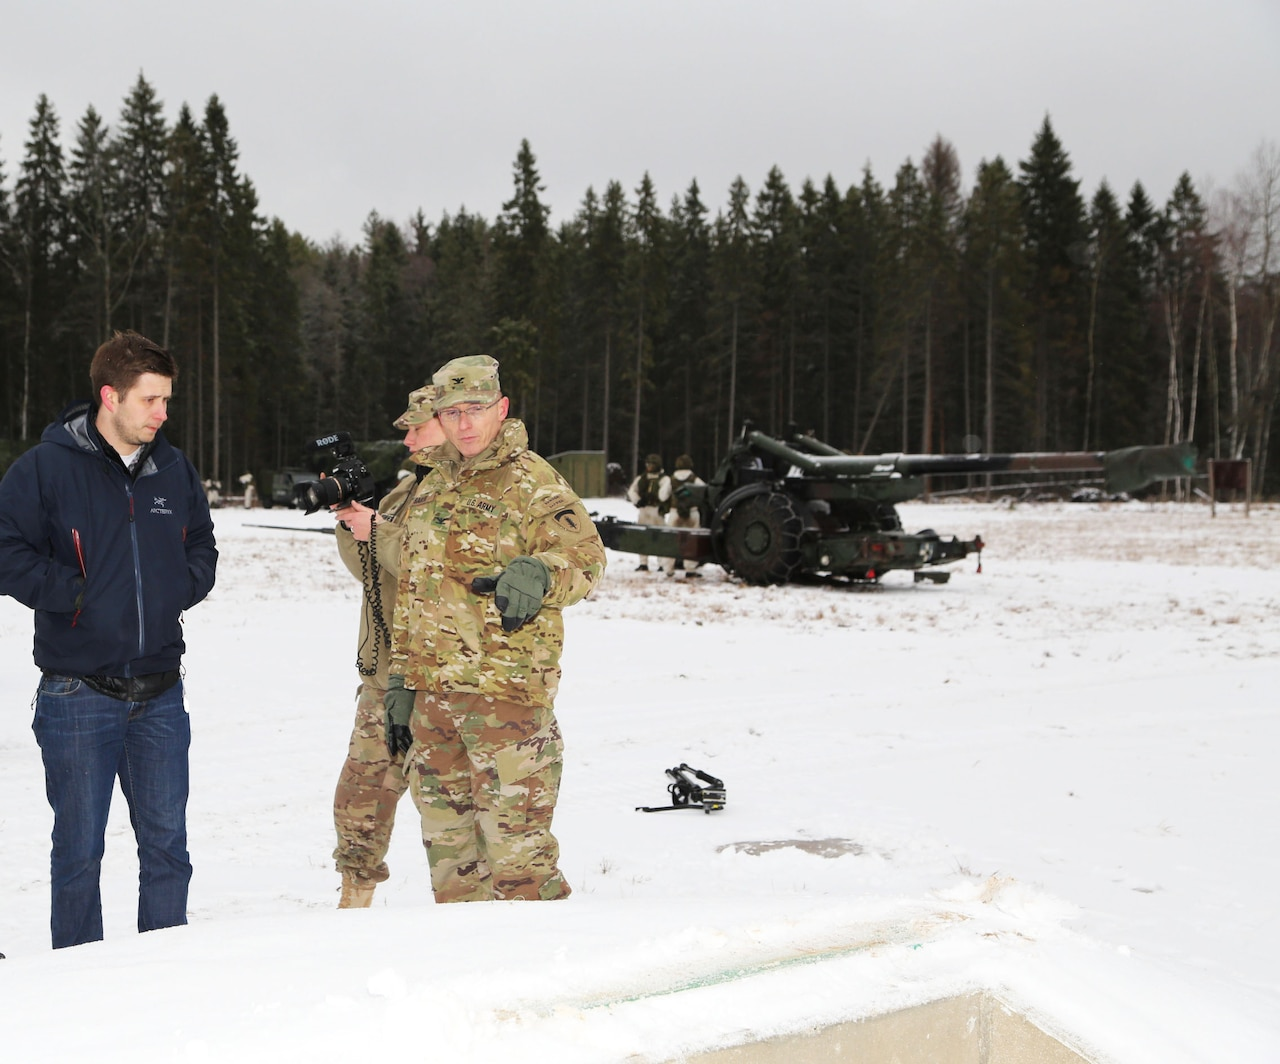 Chris Bailey, left, the U.S. Army Corps of Engineers Europe district project engineer in Estonia, briefs Army Col. John Baker, right, chief engineer for U.S. Army Europe, on newly constructed machine gun and sniper ranges built through the European Reassurance Initiative to enhance readiness of U.S., Estonian and NATO forces at Tapa Training Area, Estonia, Dec. 14, 2016.  U.S. Army Corps of Engineers Europe photo by Jennifer Aldridge